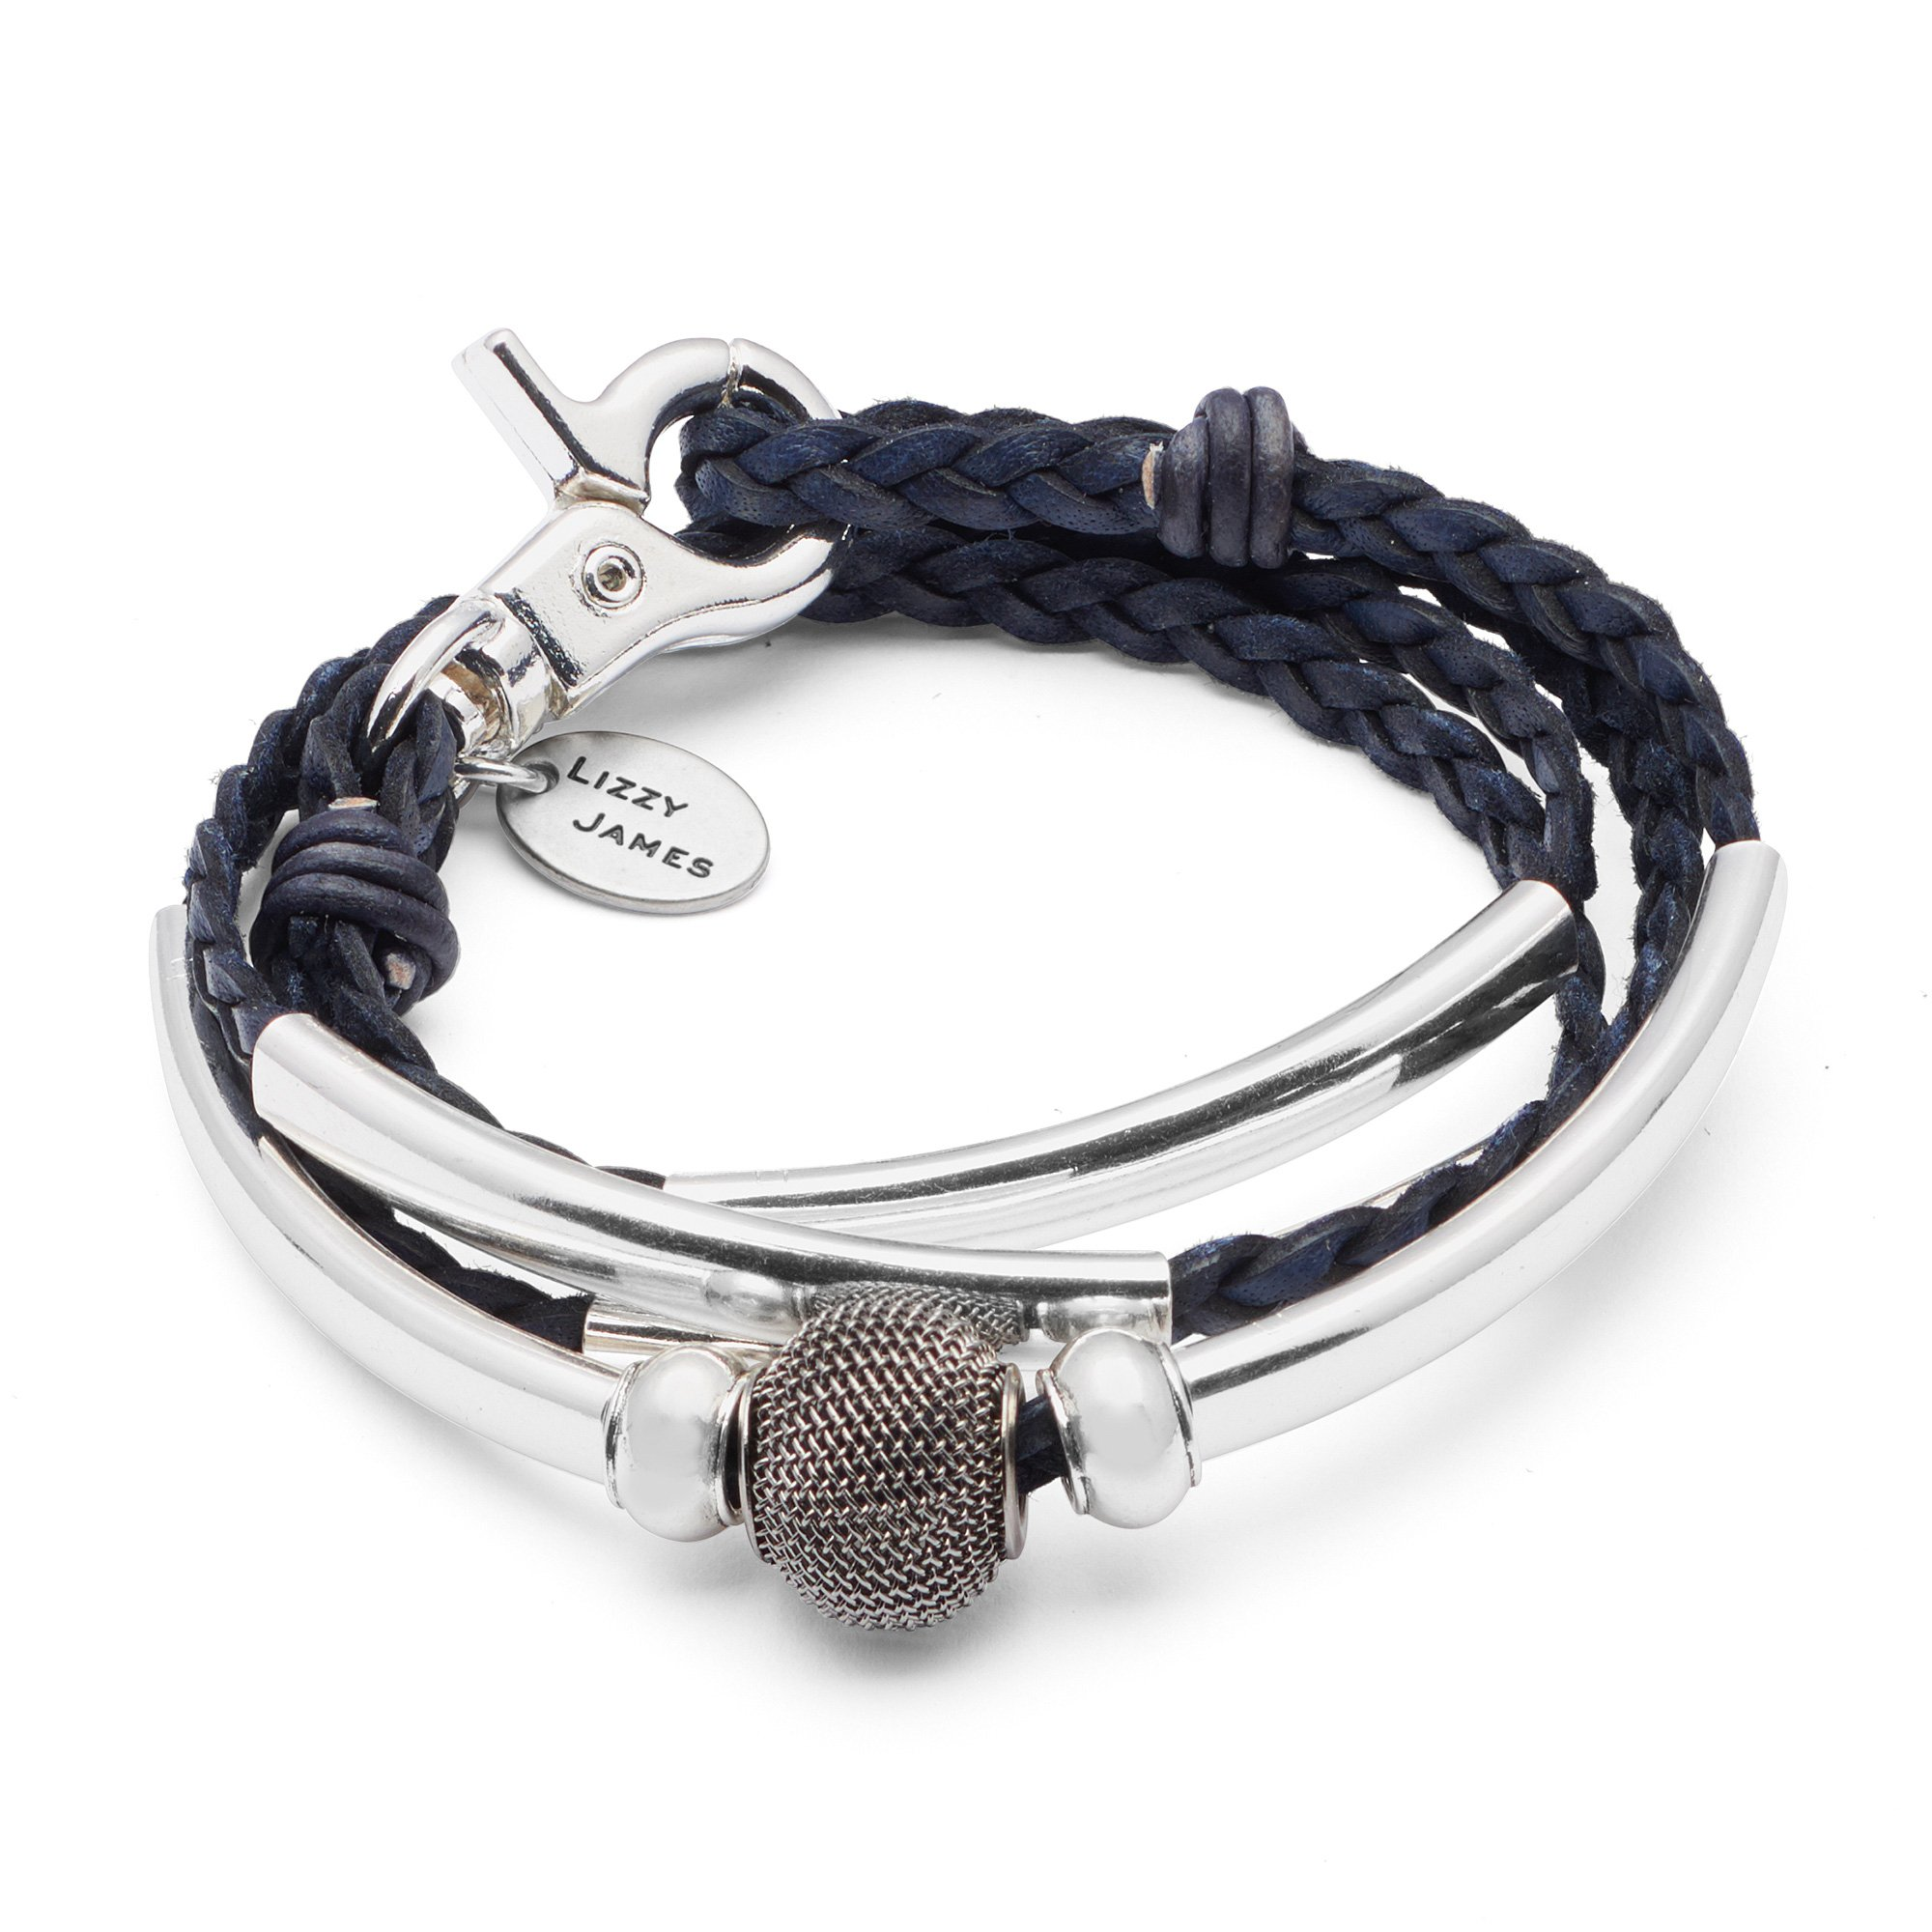 Mini Morgan Braided Leather and Silverplate Wrap Bracelet in Pacific Dark Blue Leather (XXLarge)